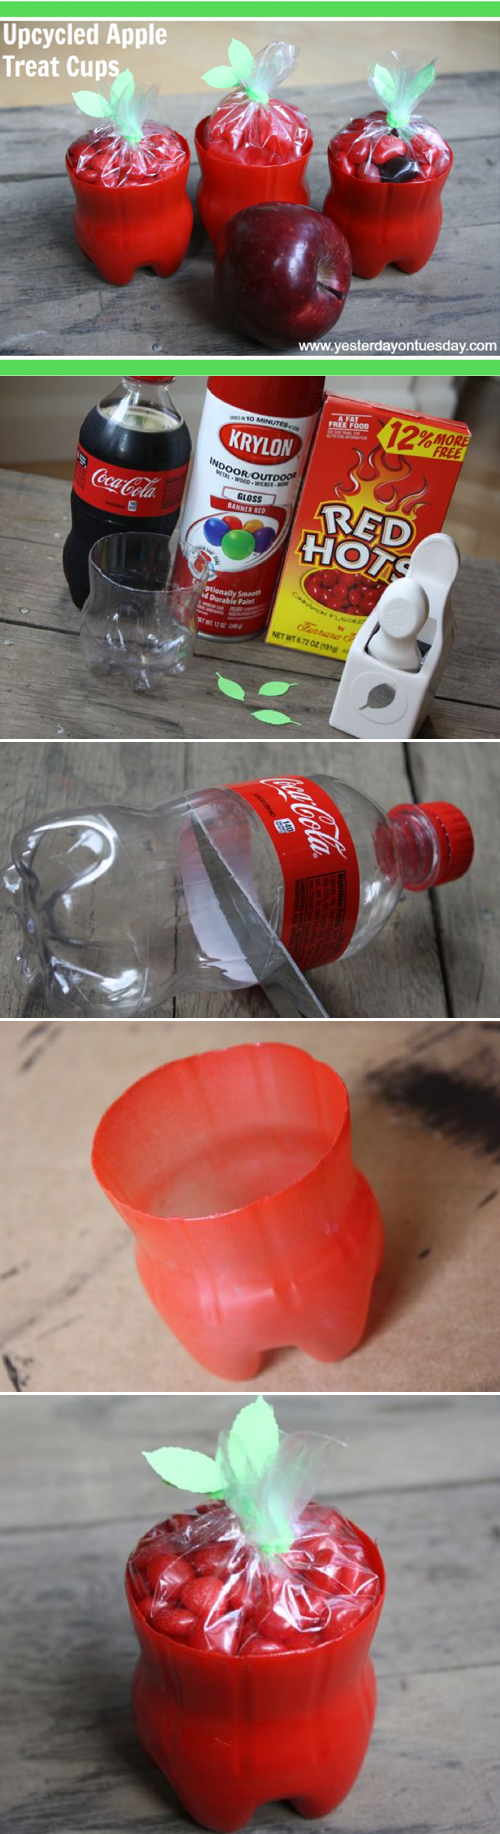 Upcycled apple treat cups--A.d.o.r.a.b.l.e.